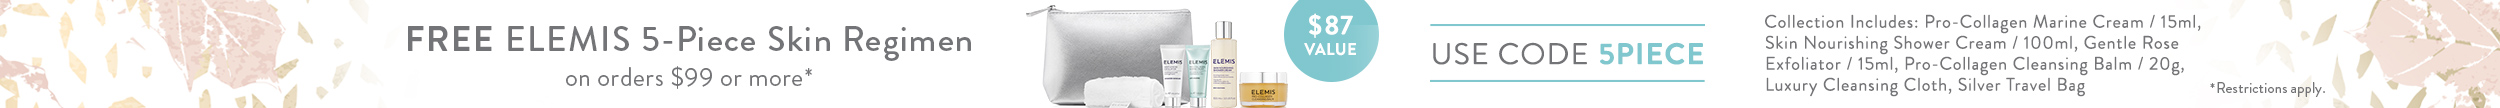 Free ELEMIS 5pc Skin Regimen on orders $99+